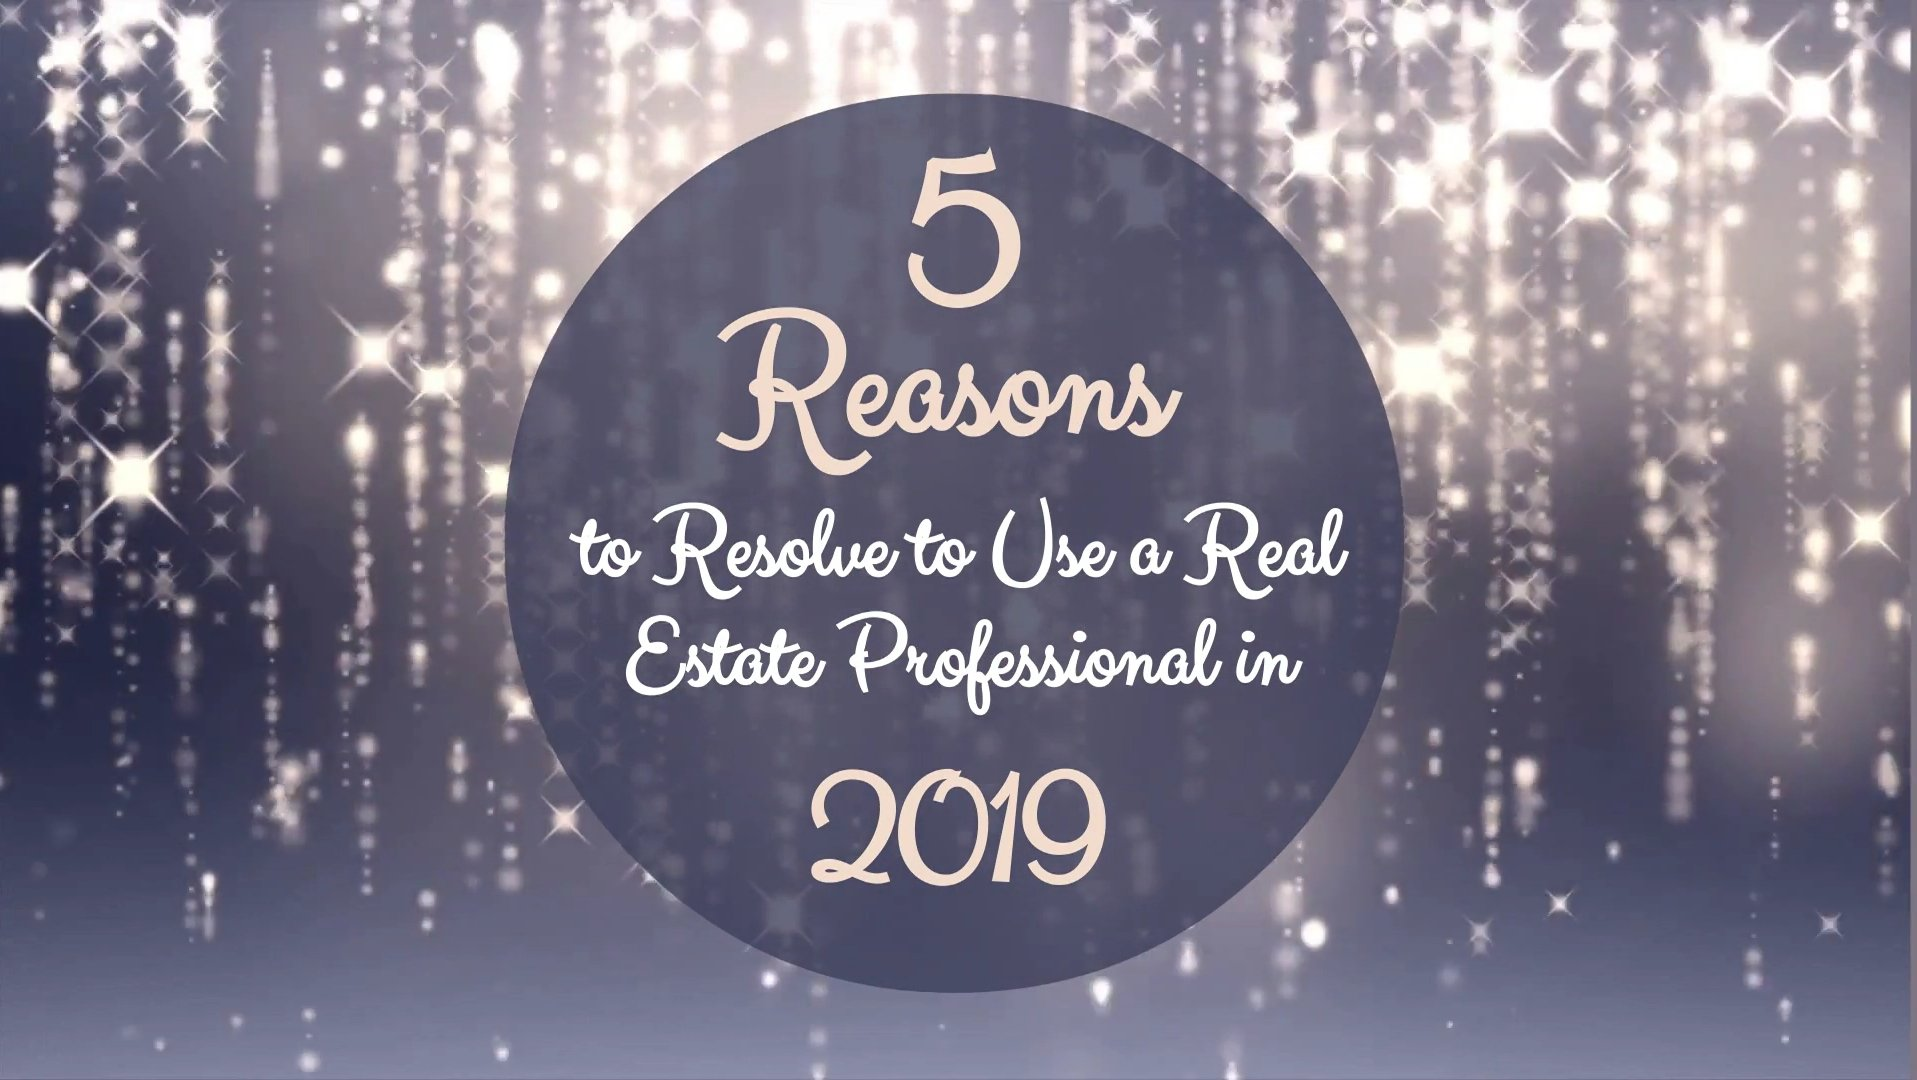 5 Reasons to Resolve to Use a Real Estate Professional in 2019